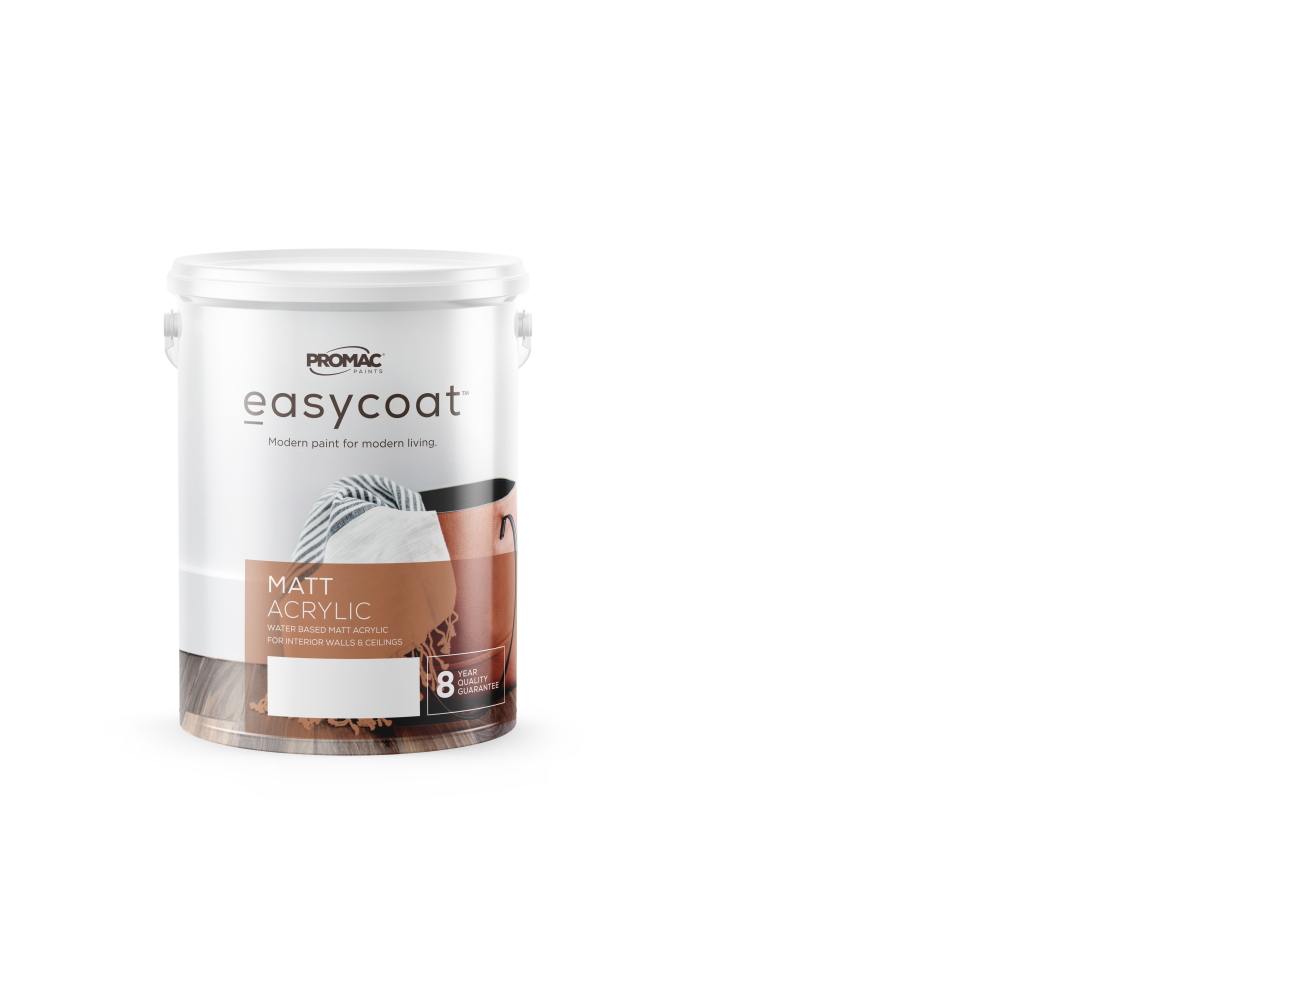 MATTACRYLIC - WATER BASEDPromac Easycoat Matt is an acrylic wall coating, which has been specially formulated to decorate interior surfaces.